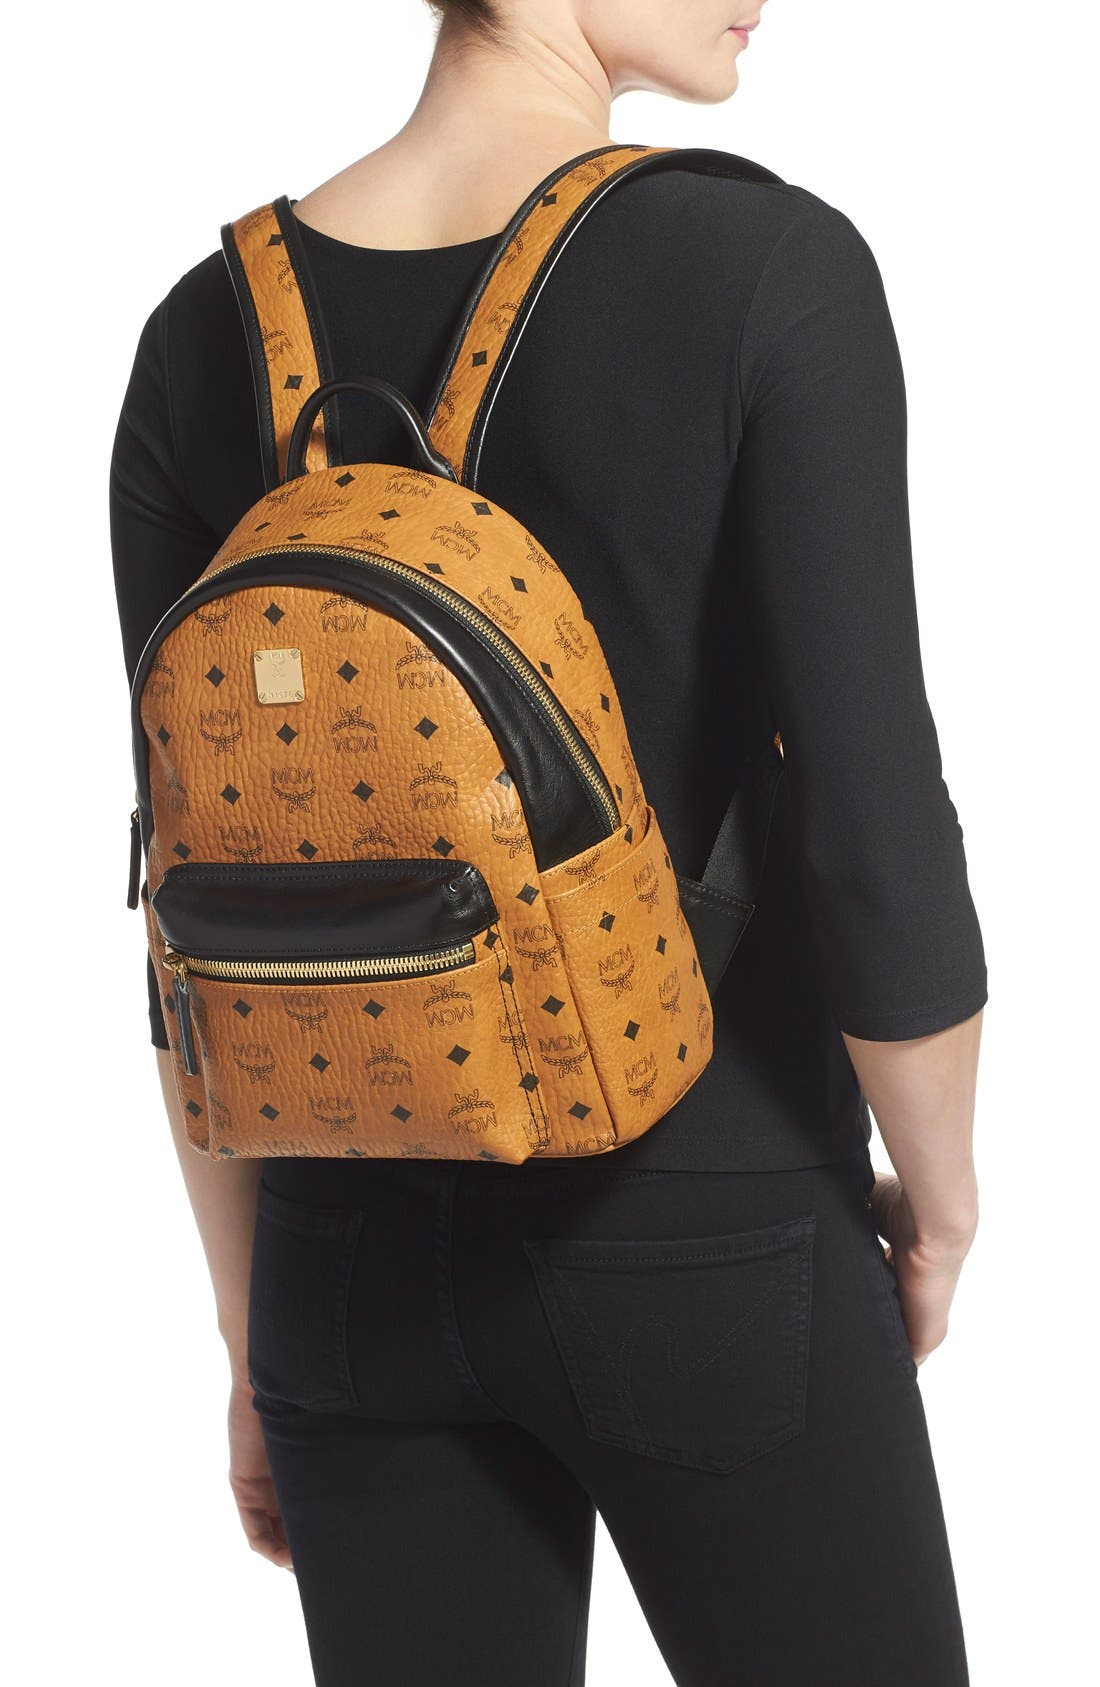 Alternate Image 2  - MCM Backpack 'Small Stark' Coated Canvas Backpack (Nordstrom Exclusive)